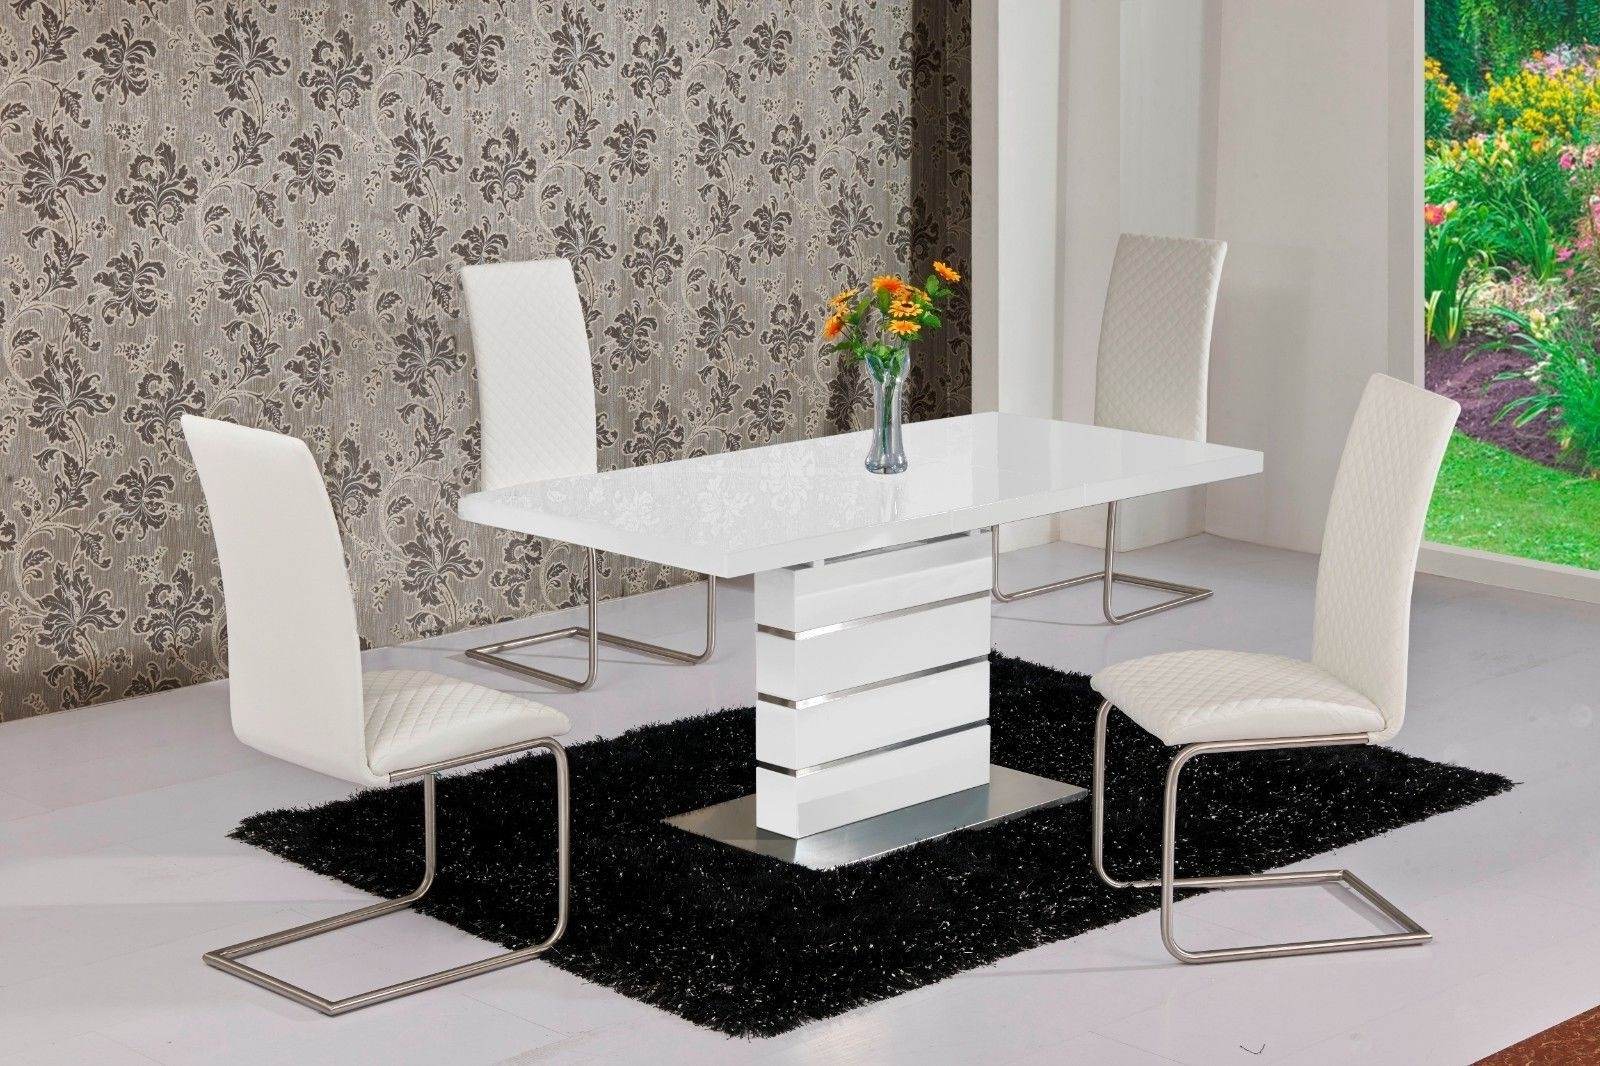 Mace High Gloss Extending 120 160 Dining Table & Chair Set – White Regarding 2018 Extending Dining Tables Sets (View 15 of 25)